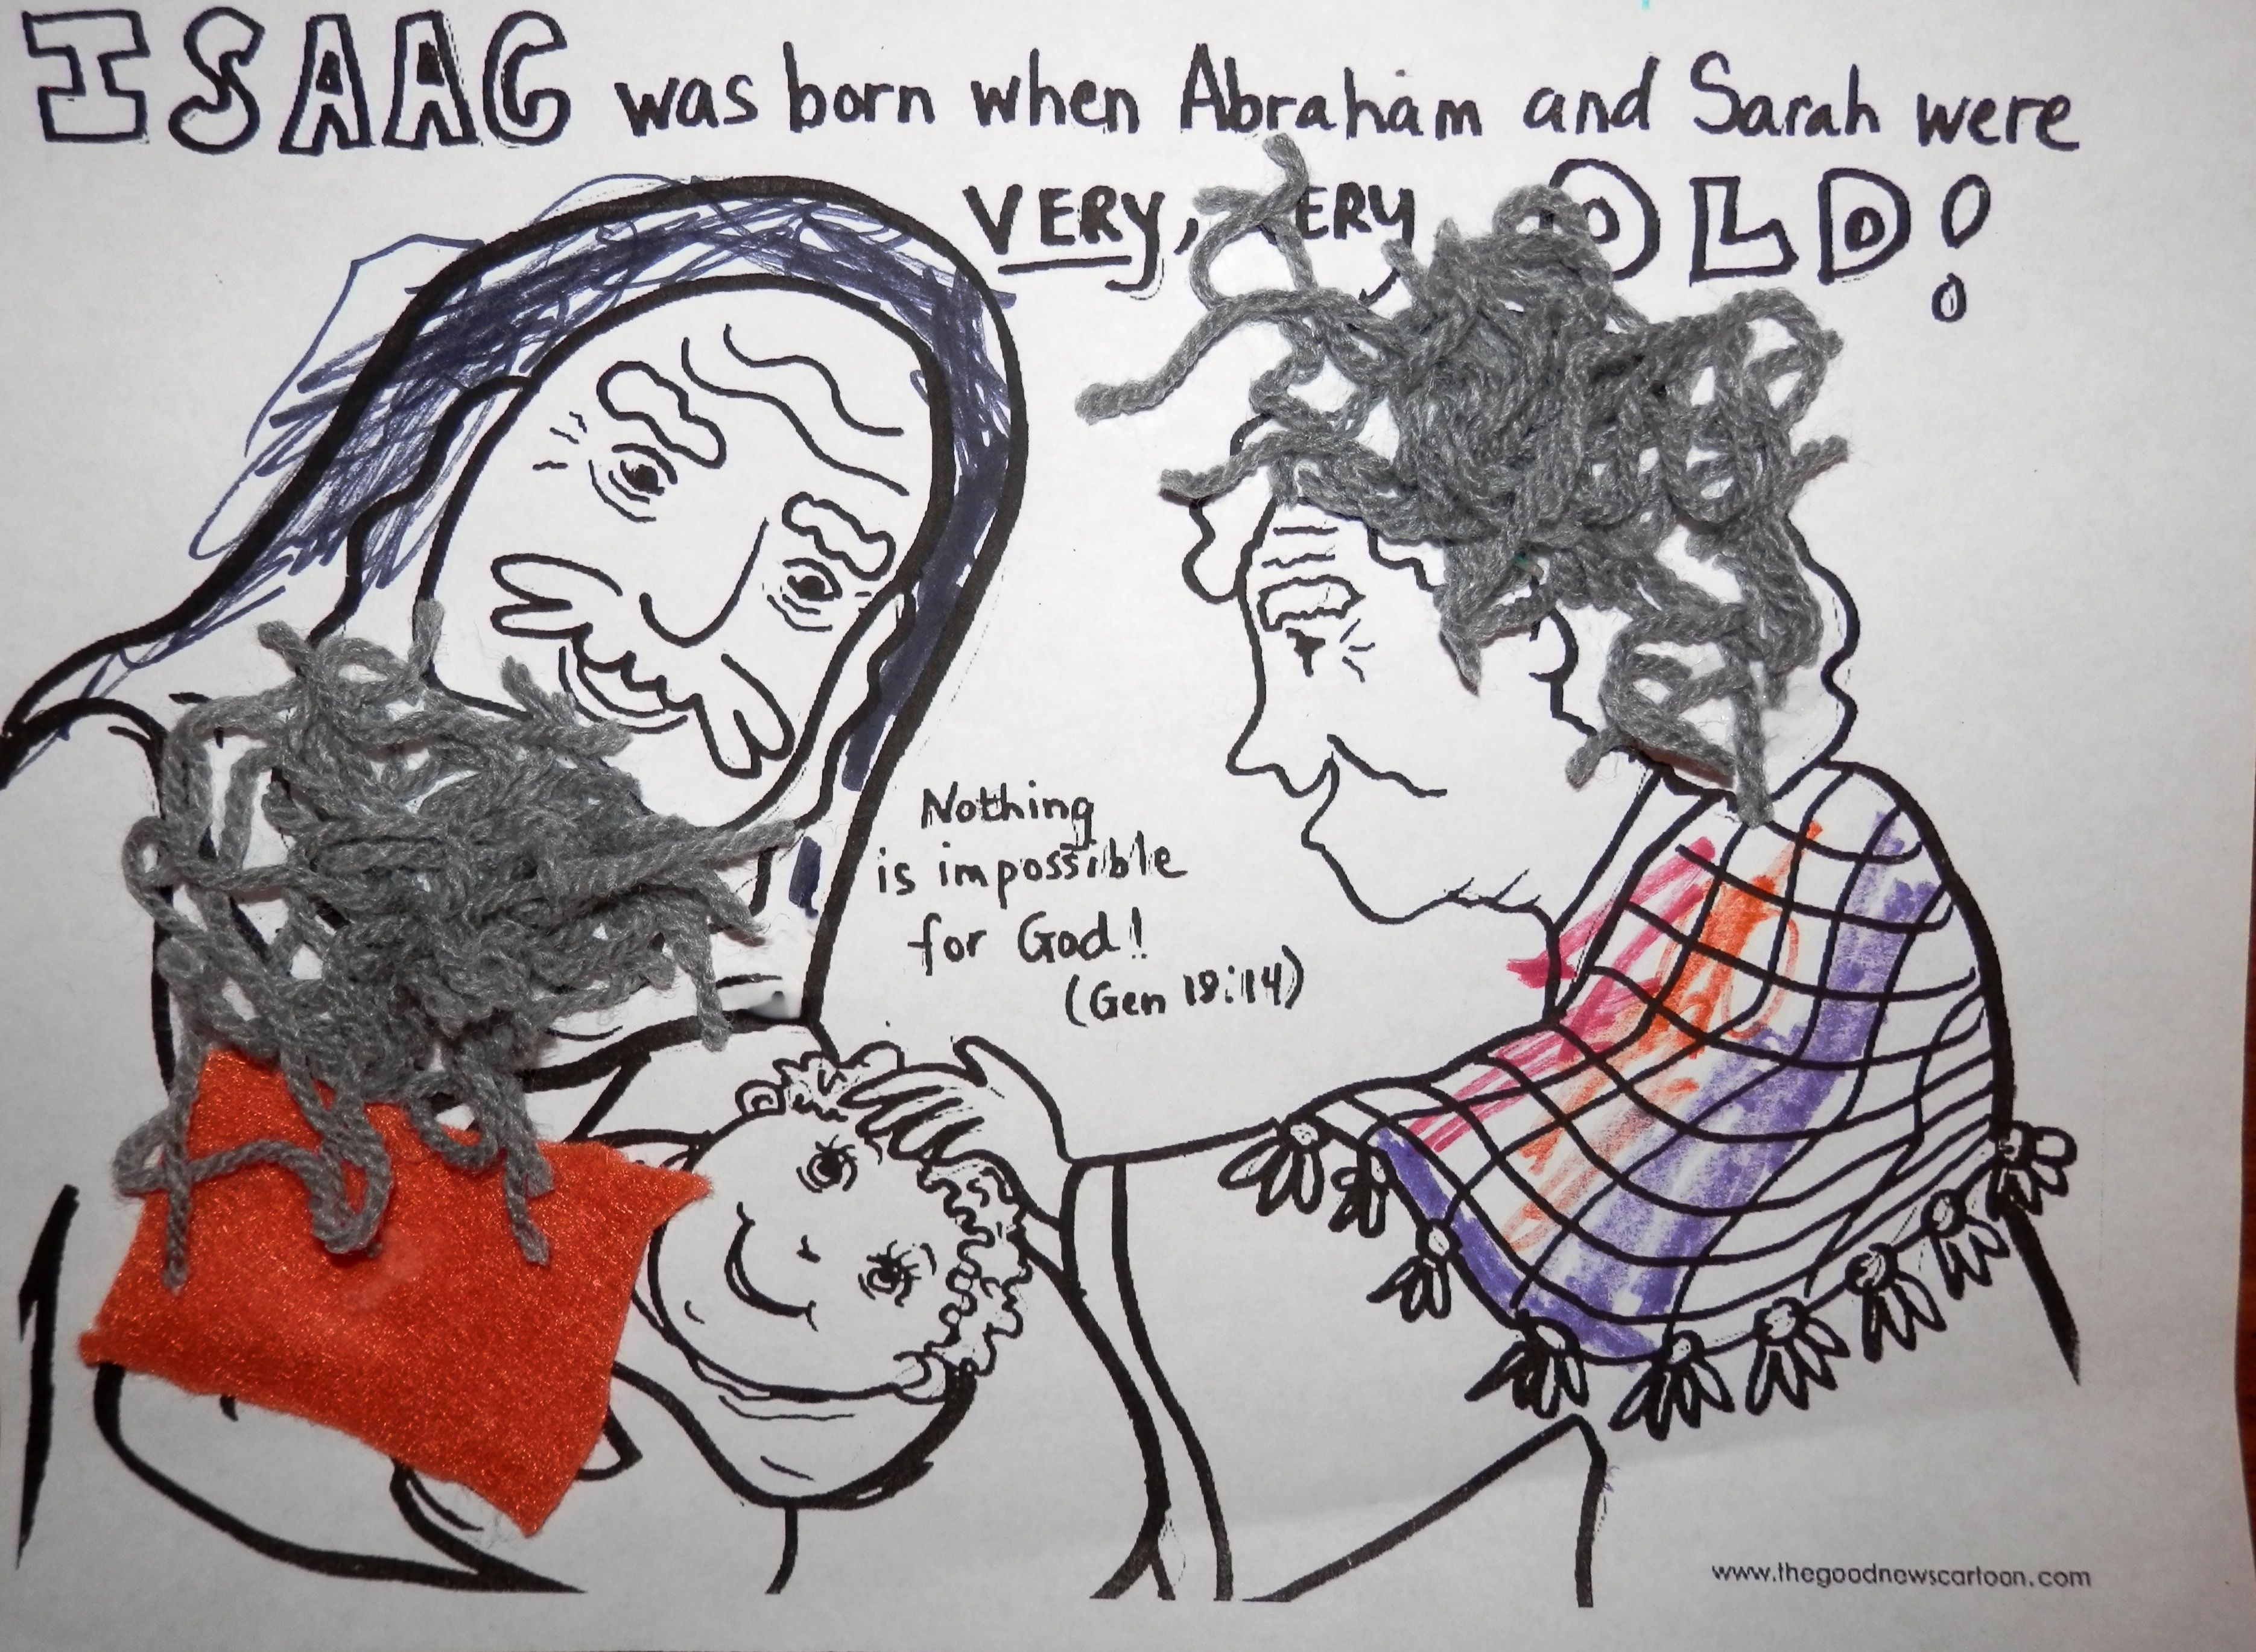 Abraham and Sarah have baby Isaac. I just found this photo on-line and provided gray yarn for the kids and felt pieces for the baby's blanket for them to glue and encouraged them to color the picture also.